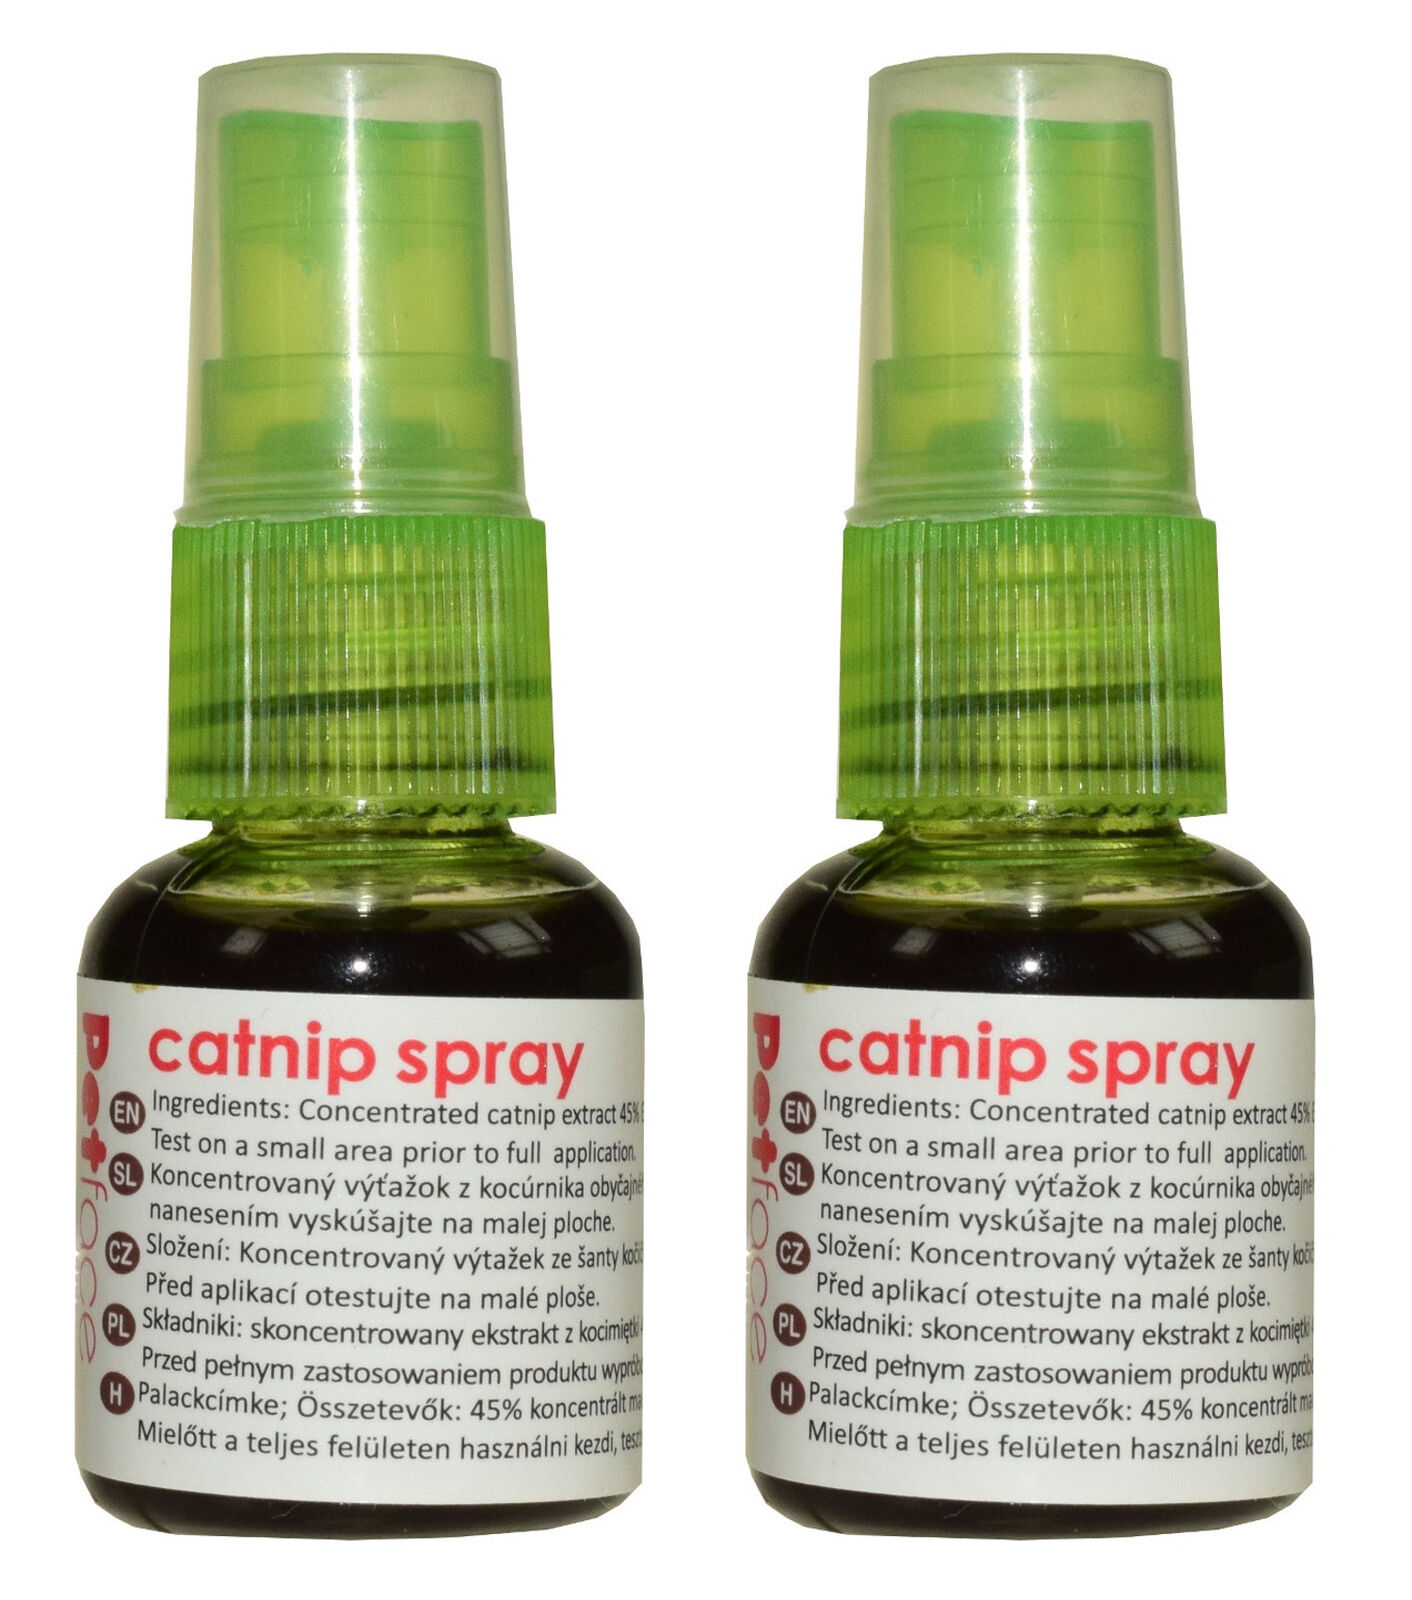 Petface Catnip Spray for Scratcher Toys 45% Cat Nip 55% Ethanol 2 x 30ml Bottle